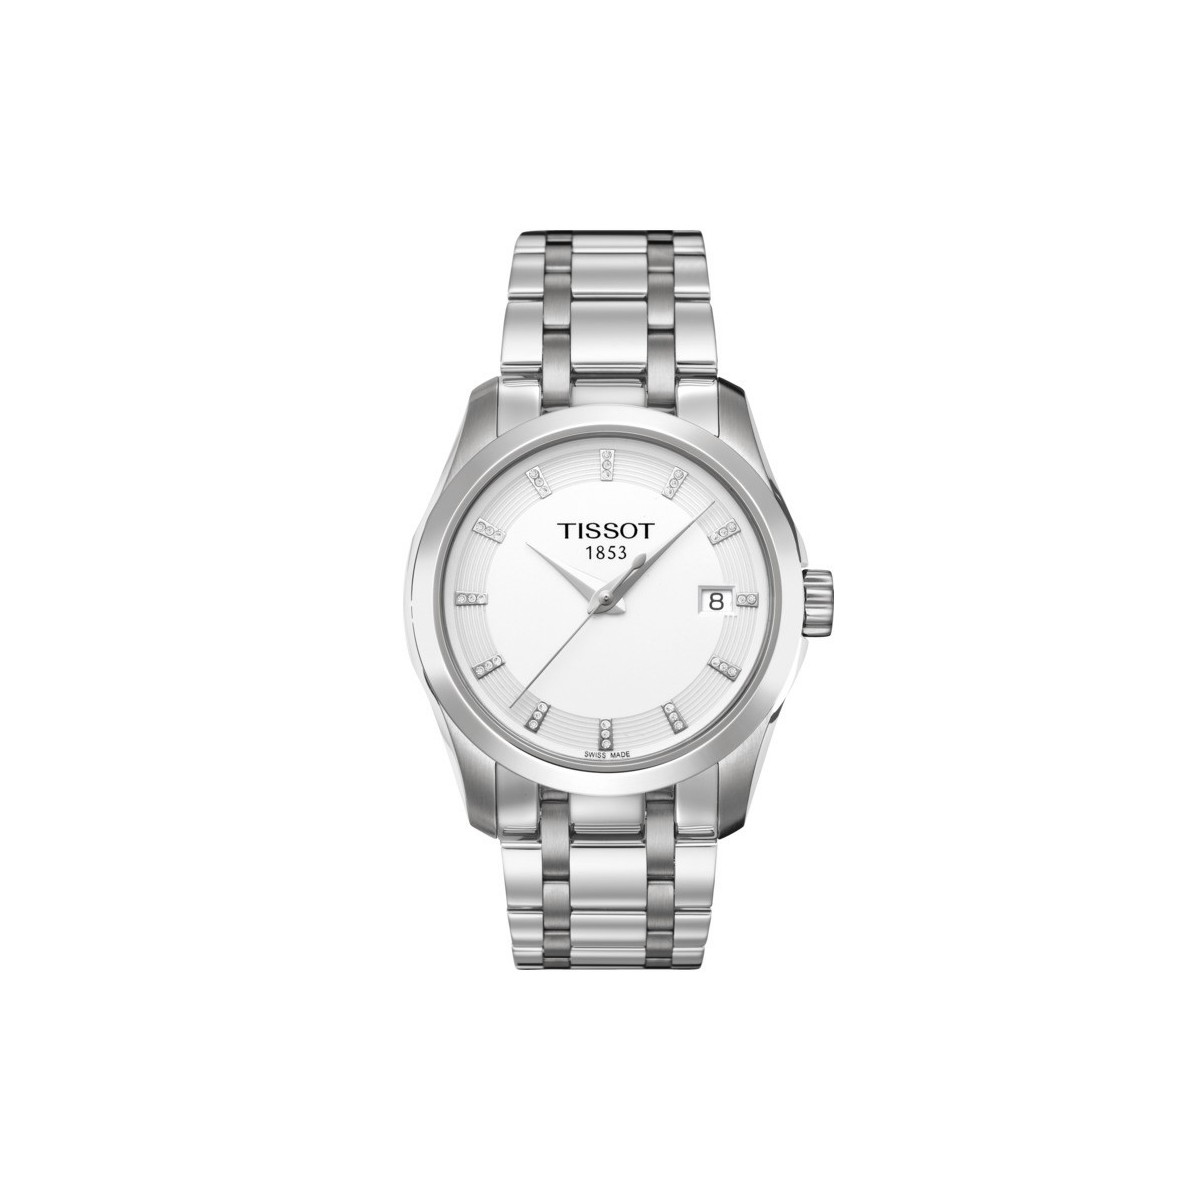 0838a336bbb1 Reloj para mujer TISSOT ⌚ Couturier Lady en acero inoxidable